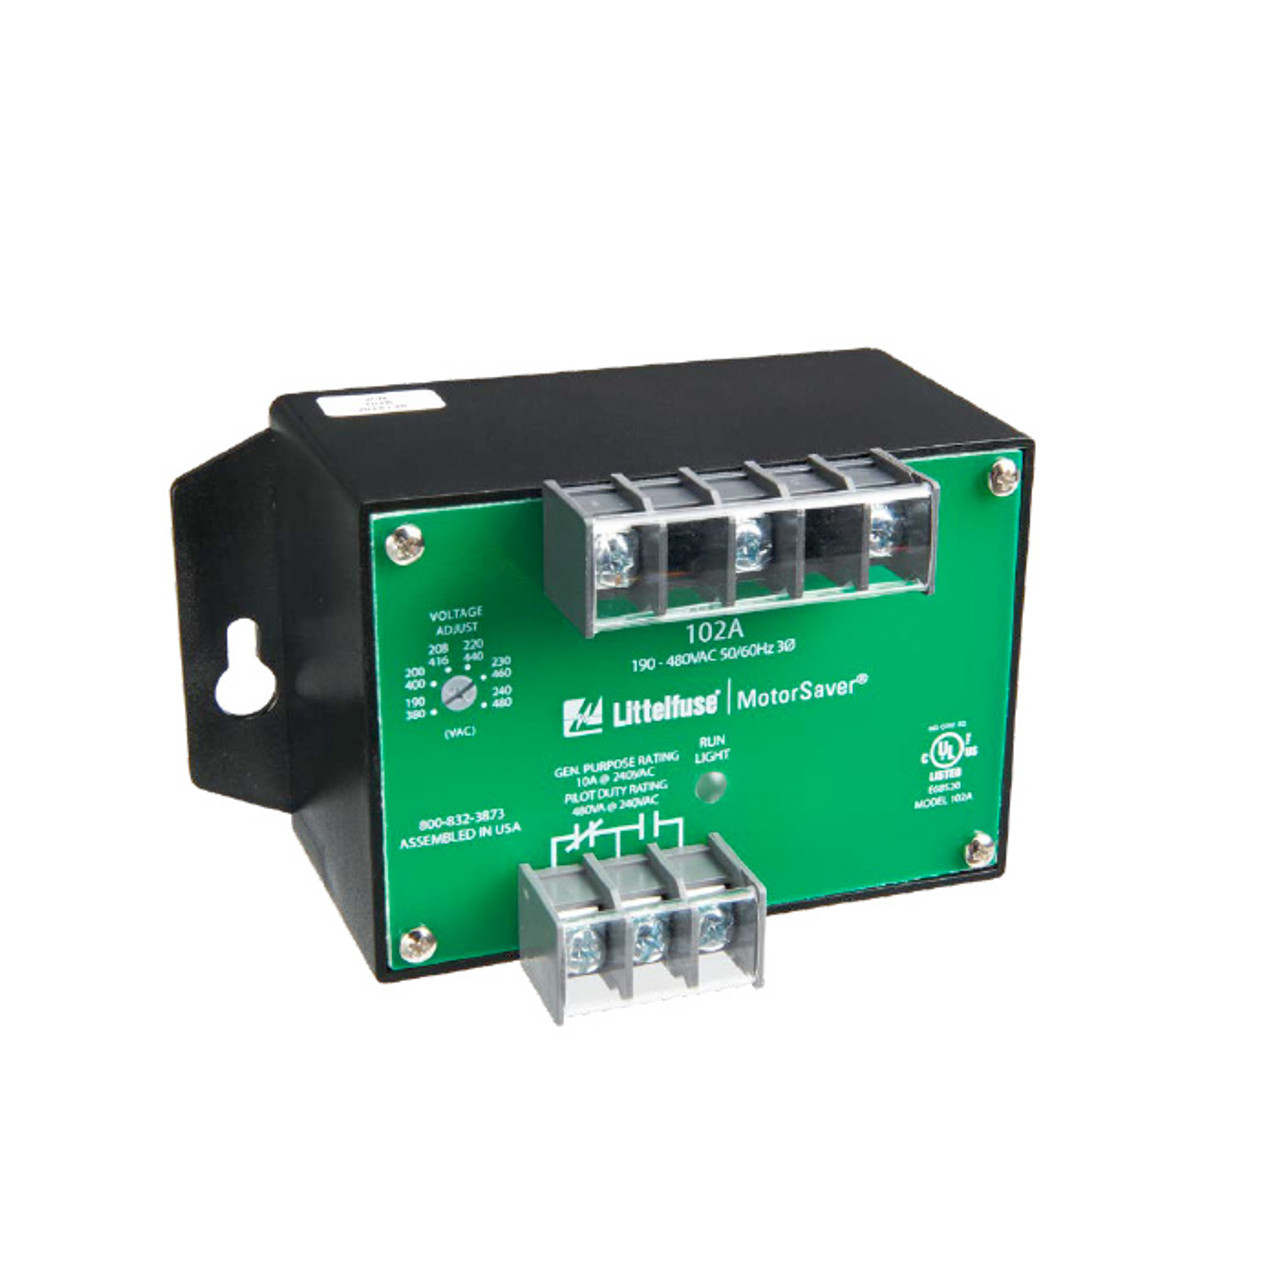 102A-9 3-PHASE VOLTAGE MONITOR